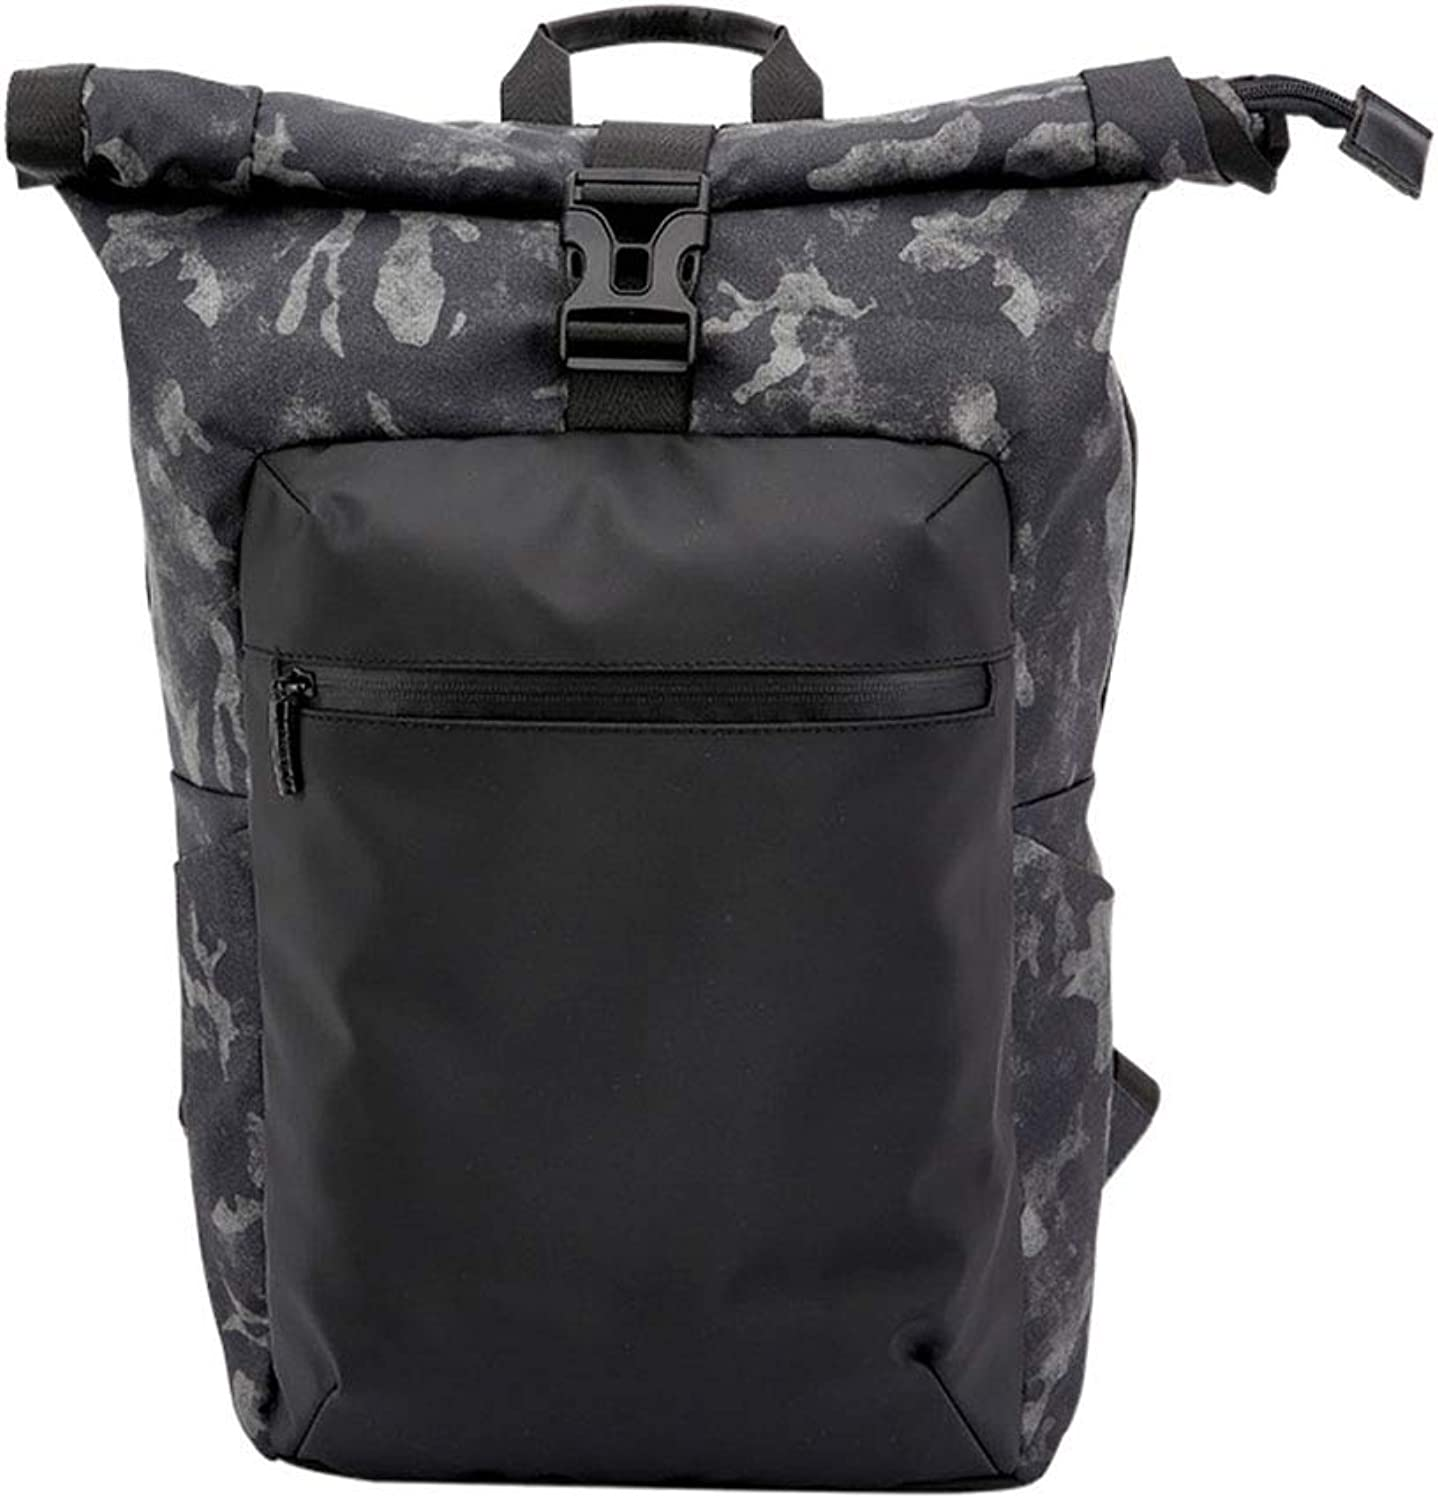 Unisex Outdoor Sports Backpack, Leisure Camouflage Daypack Water Resistant MultiFunction Travel Holdall Bag Large Capacity Bookbag